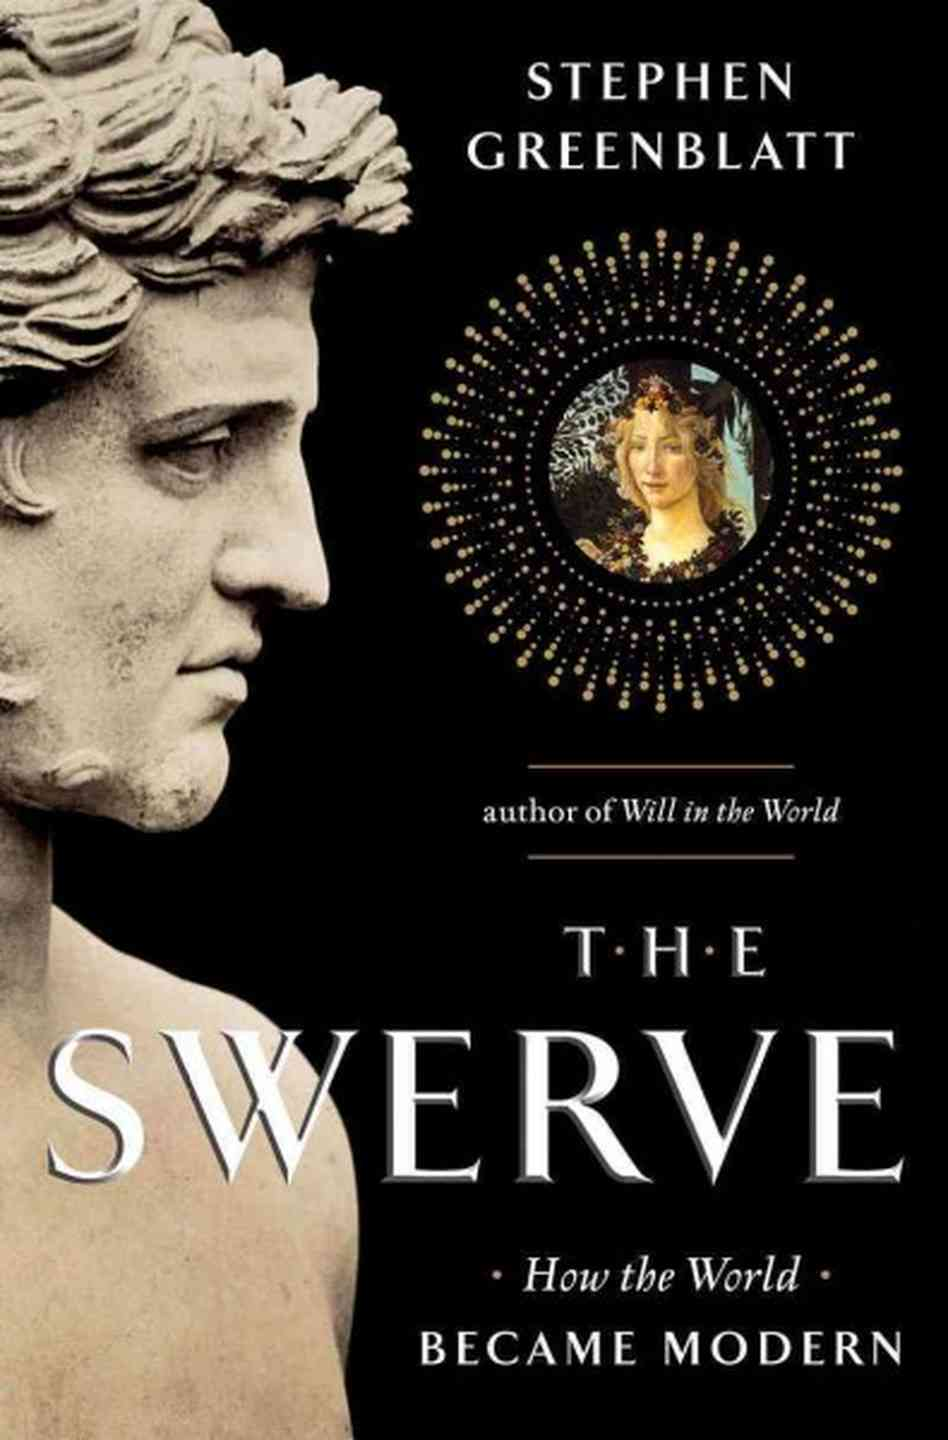 Uncategorized taking on popular histories the swerve how the world became modern reviewed by costa valettas fandeluxe Image collections